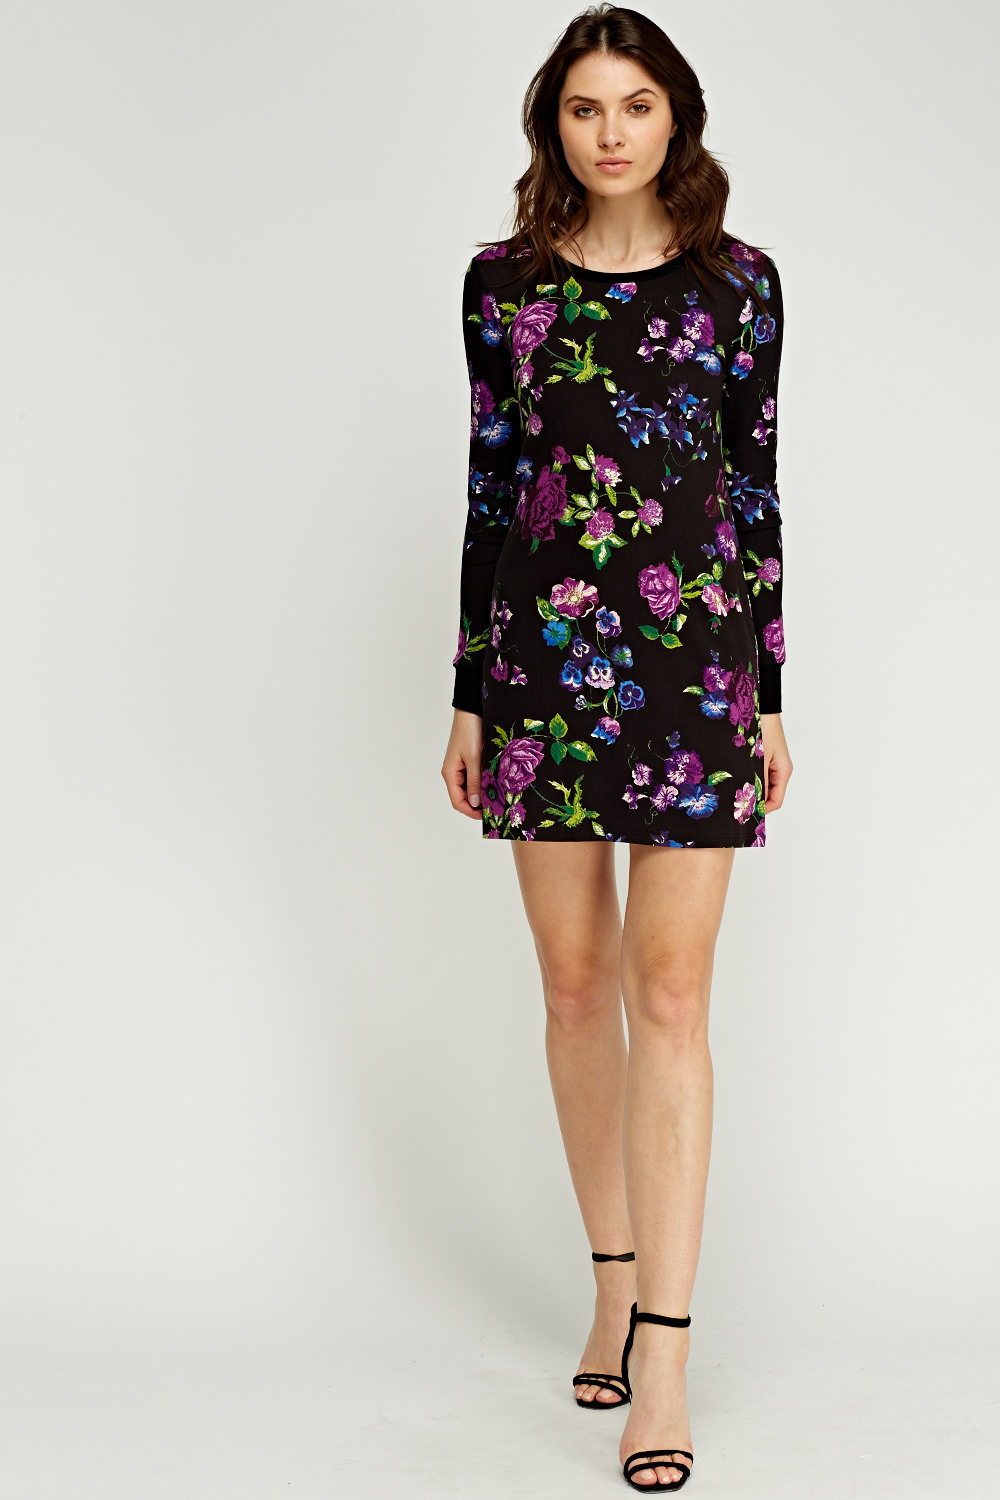 a516694fd9 Juicy Couture Floral Printed Dress - Limited edition